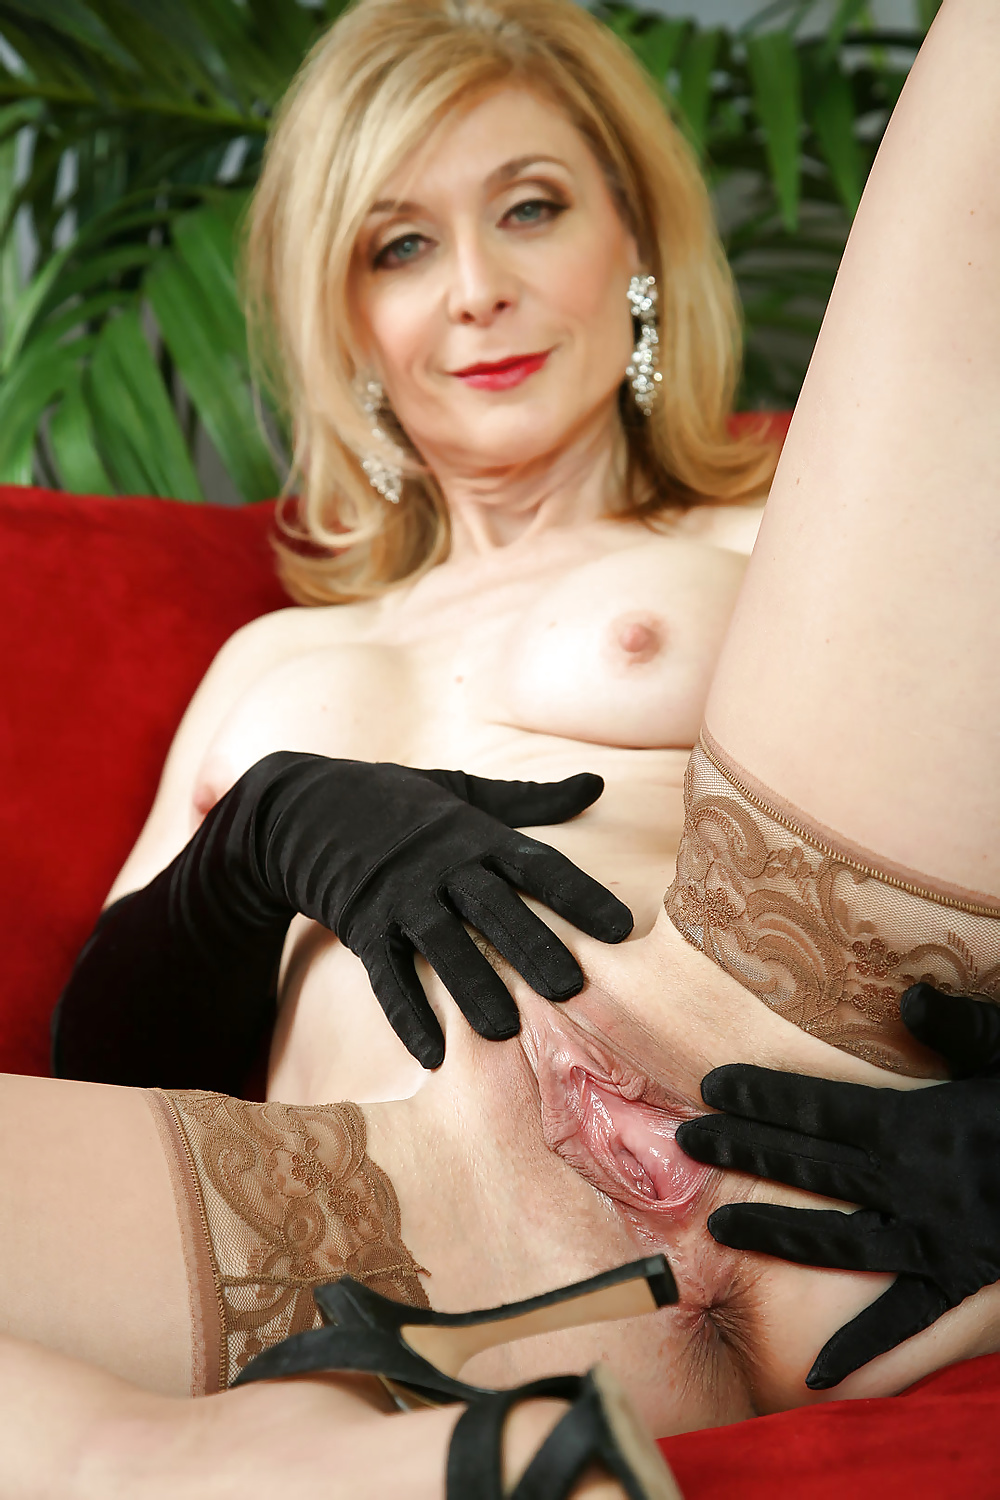 nina-hartley-spread-eagle-photos